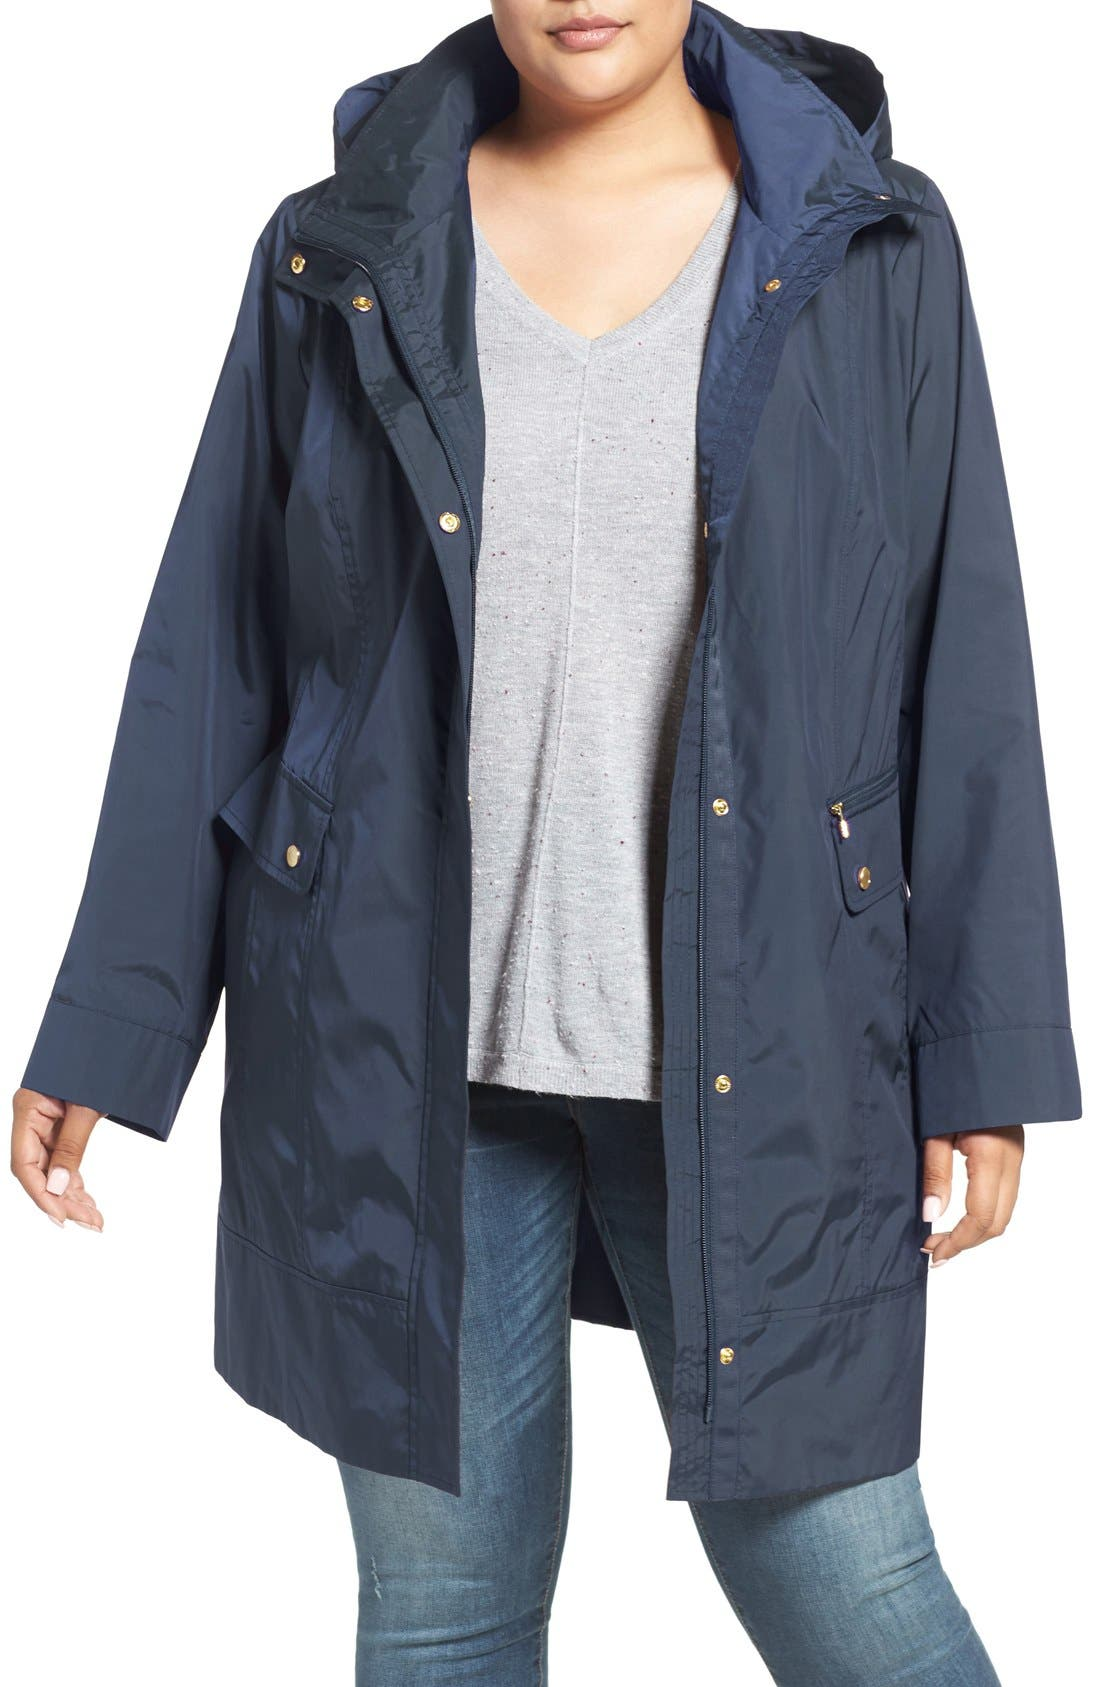 Alternate Image 1 Selected - Cole Haan Water Resistant Rain Jacket (Plus Size)